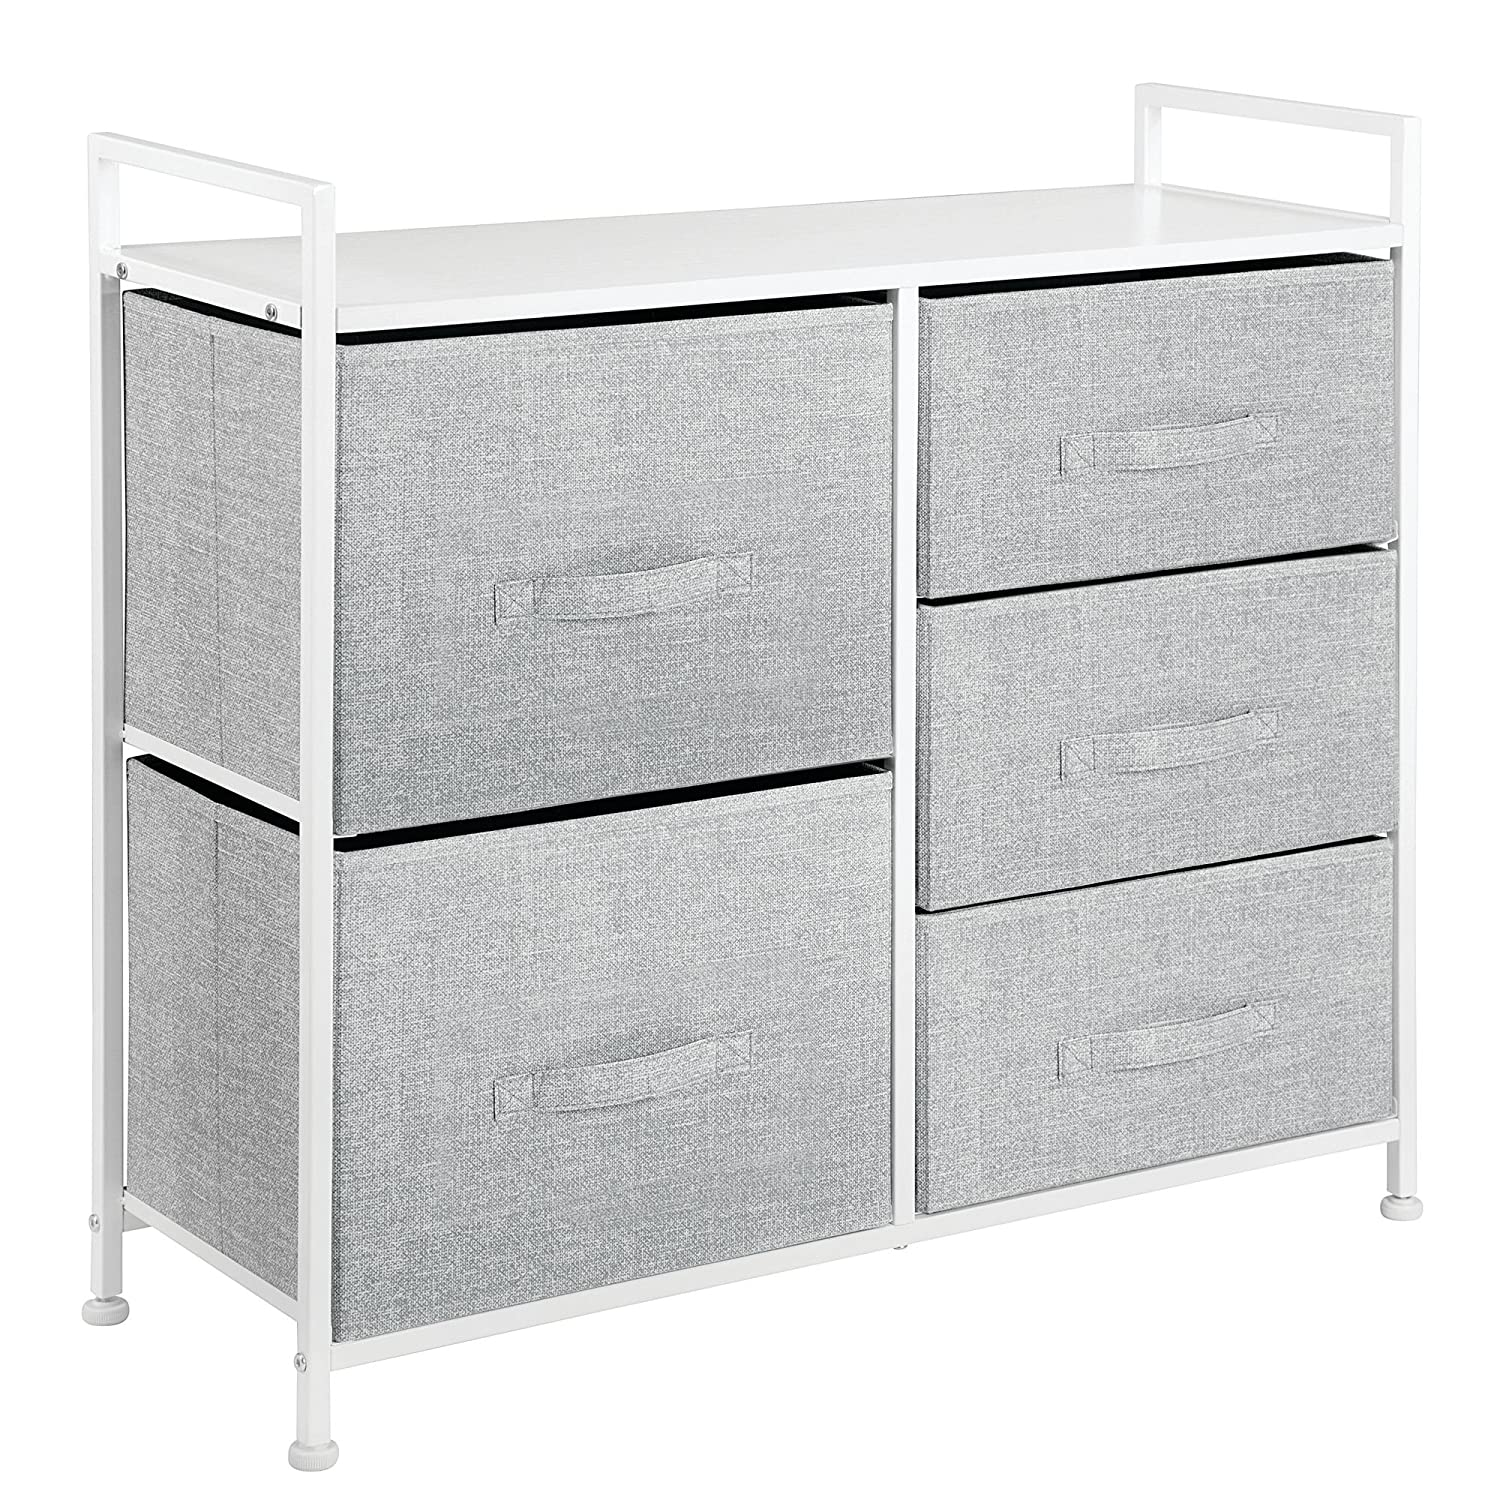 Wood Top Closets Charcoal Gray//Black MetroDecor 00137MDCO Sturdy Steel Frame mDesign Wide Dresser Storage Tower Easy Pull Fabric Bins 5 Drawers Hallway Textured Print Entryway Organizer Unit for Bedroom